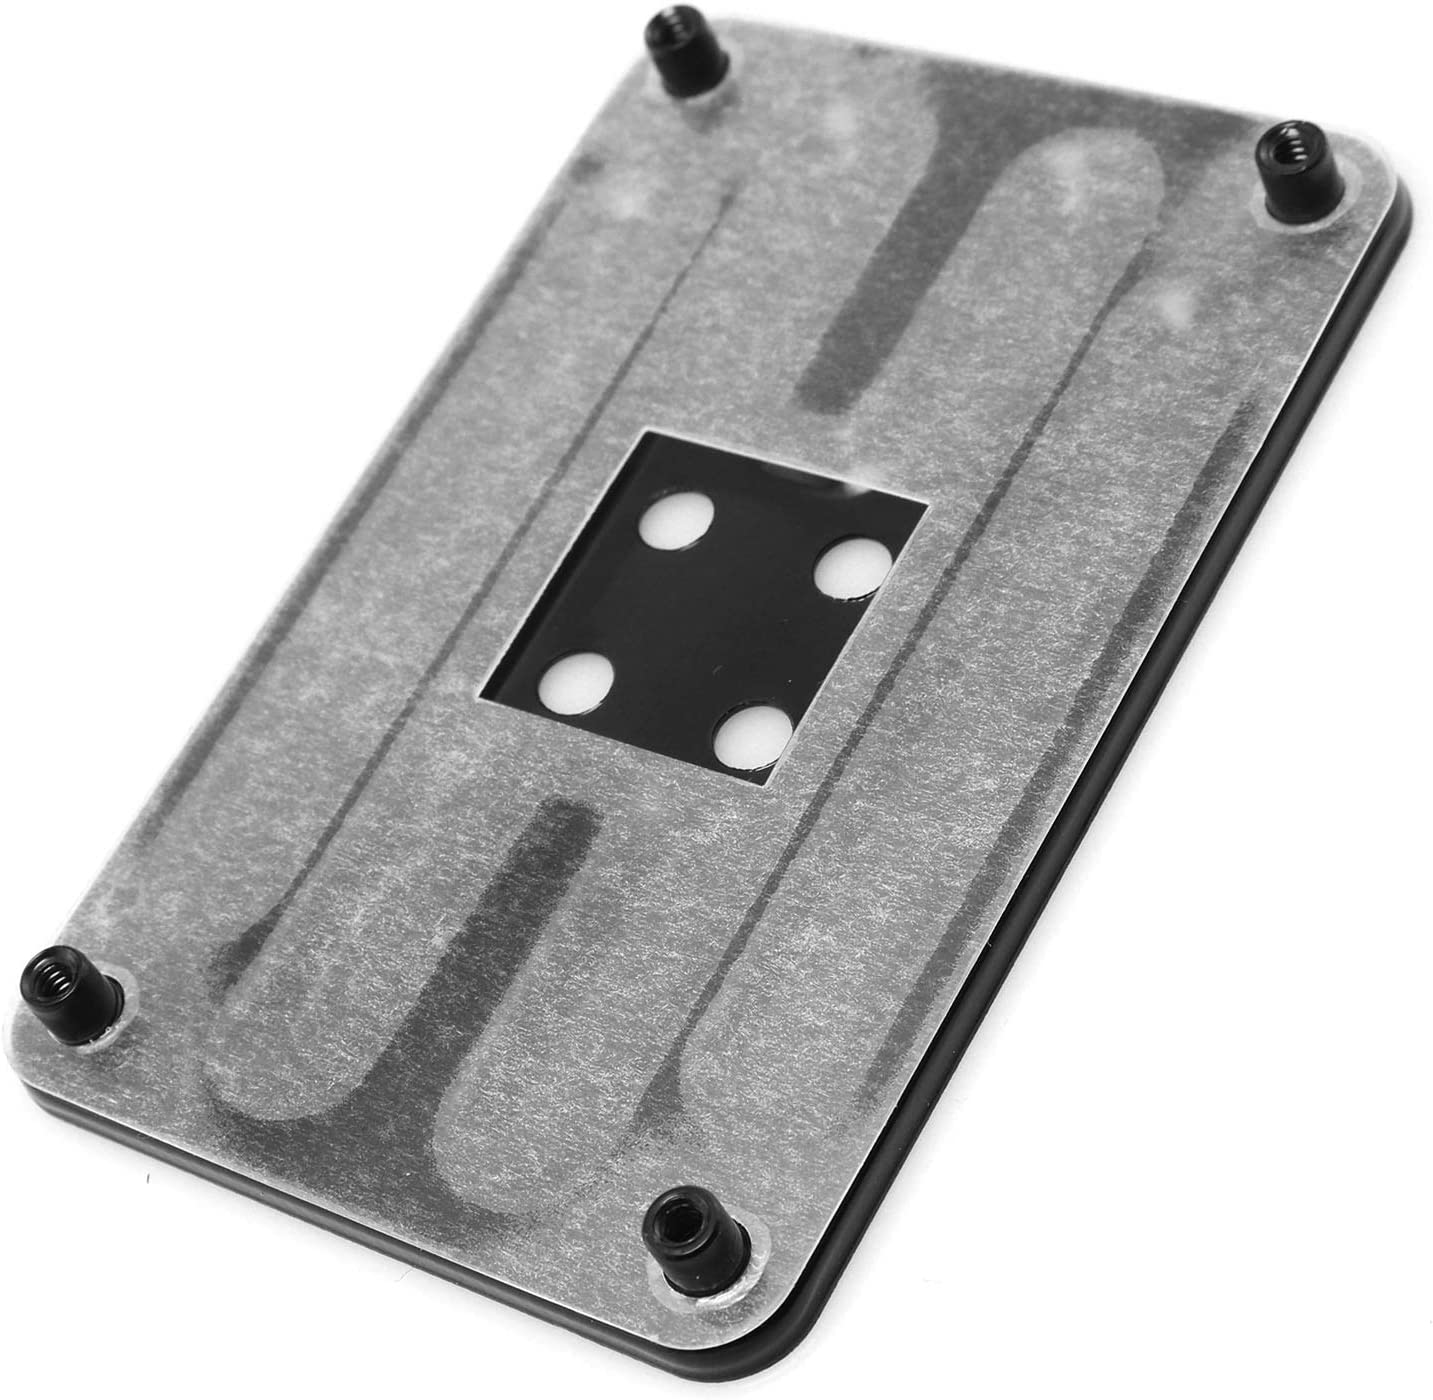 DGZZI AM4 Backplane Durable Iron CPU Heatsink Bracket Backplate Back CPU Fan Water Cooling Mounting Sheet Plate for AM4 AMD